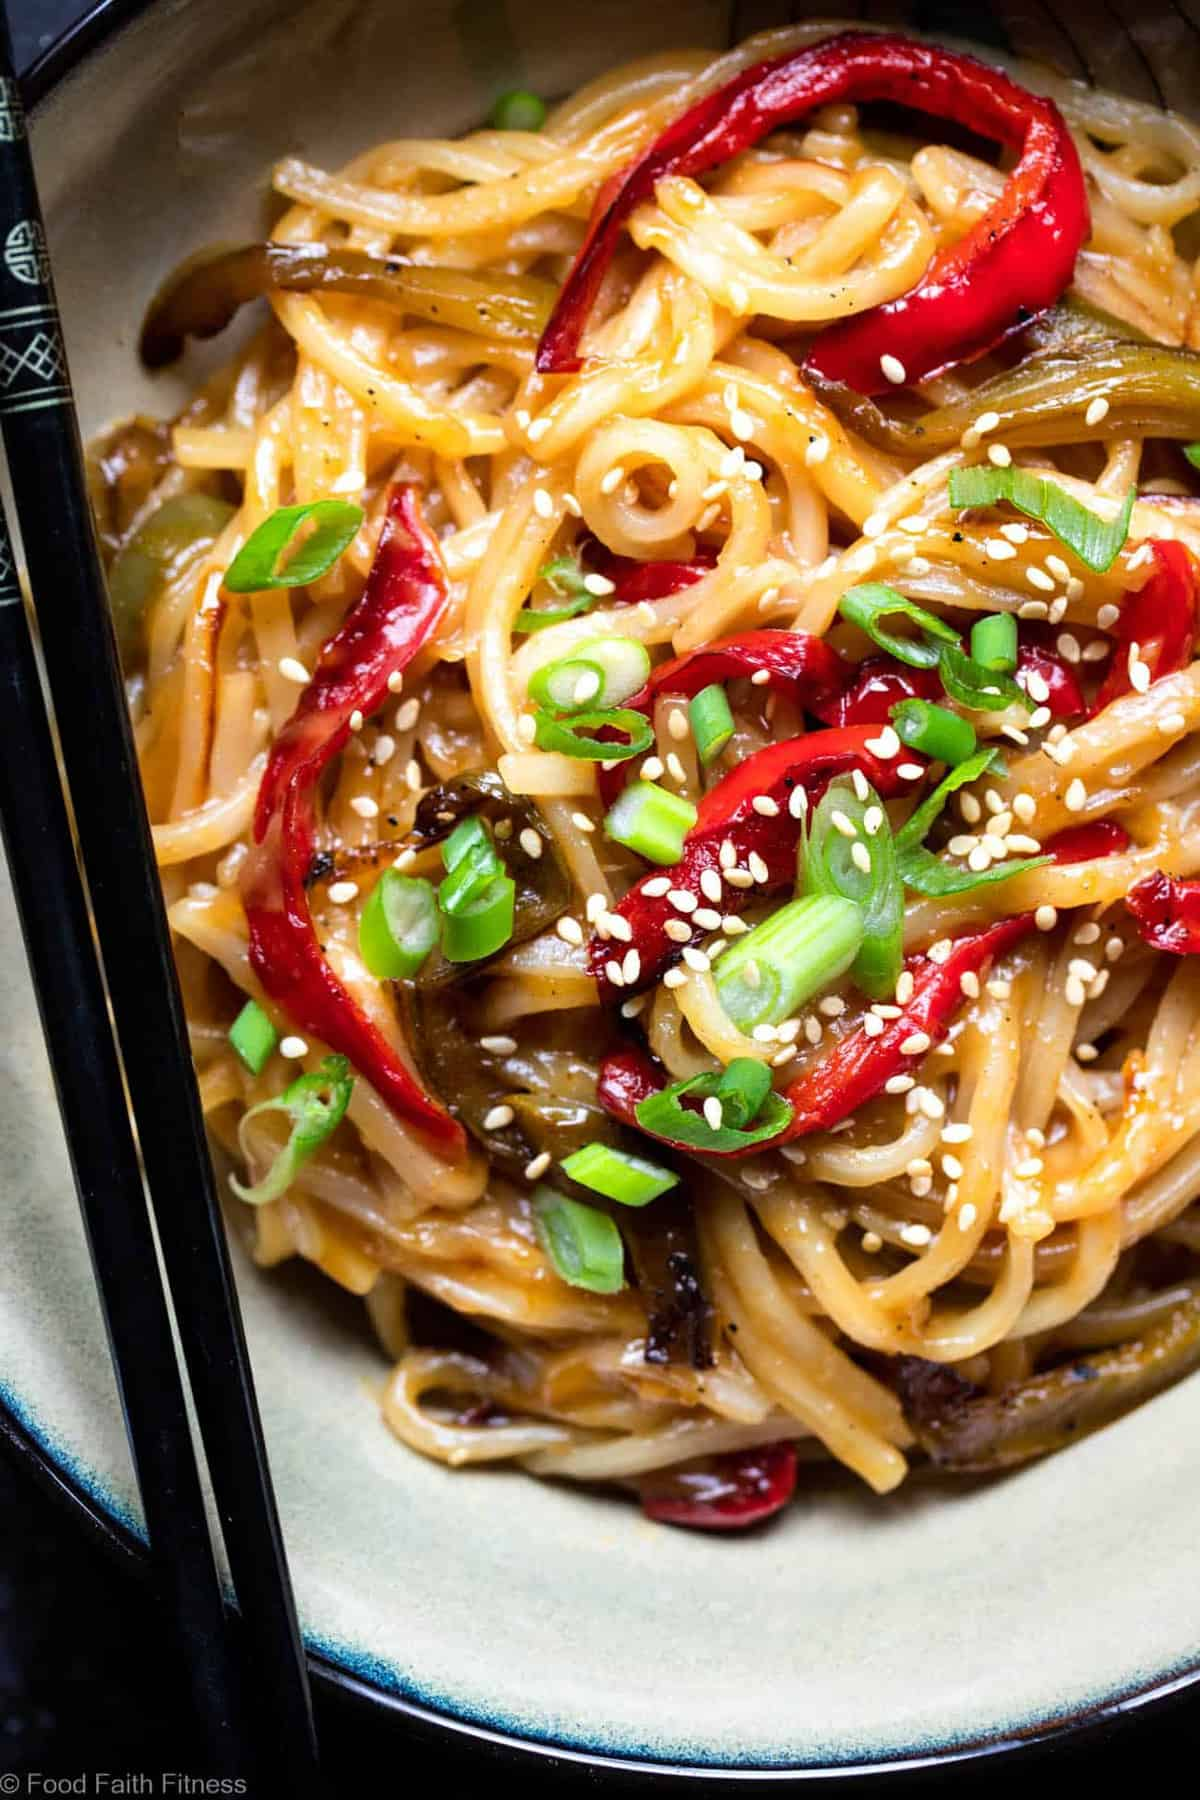 Honey Garlic Pressure Cooker Noodles - These Asian Instant Pot noodles are sticky, sweet and SO addicting! An EASY, gluten free dinner that even picky eaters will request! | #Foodfaithfitness |